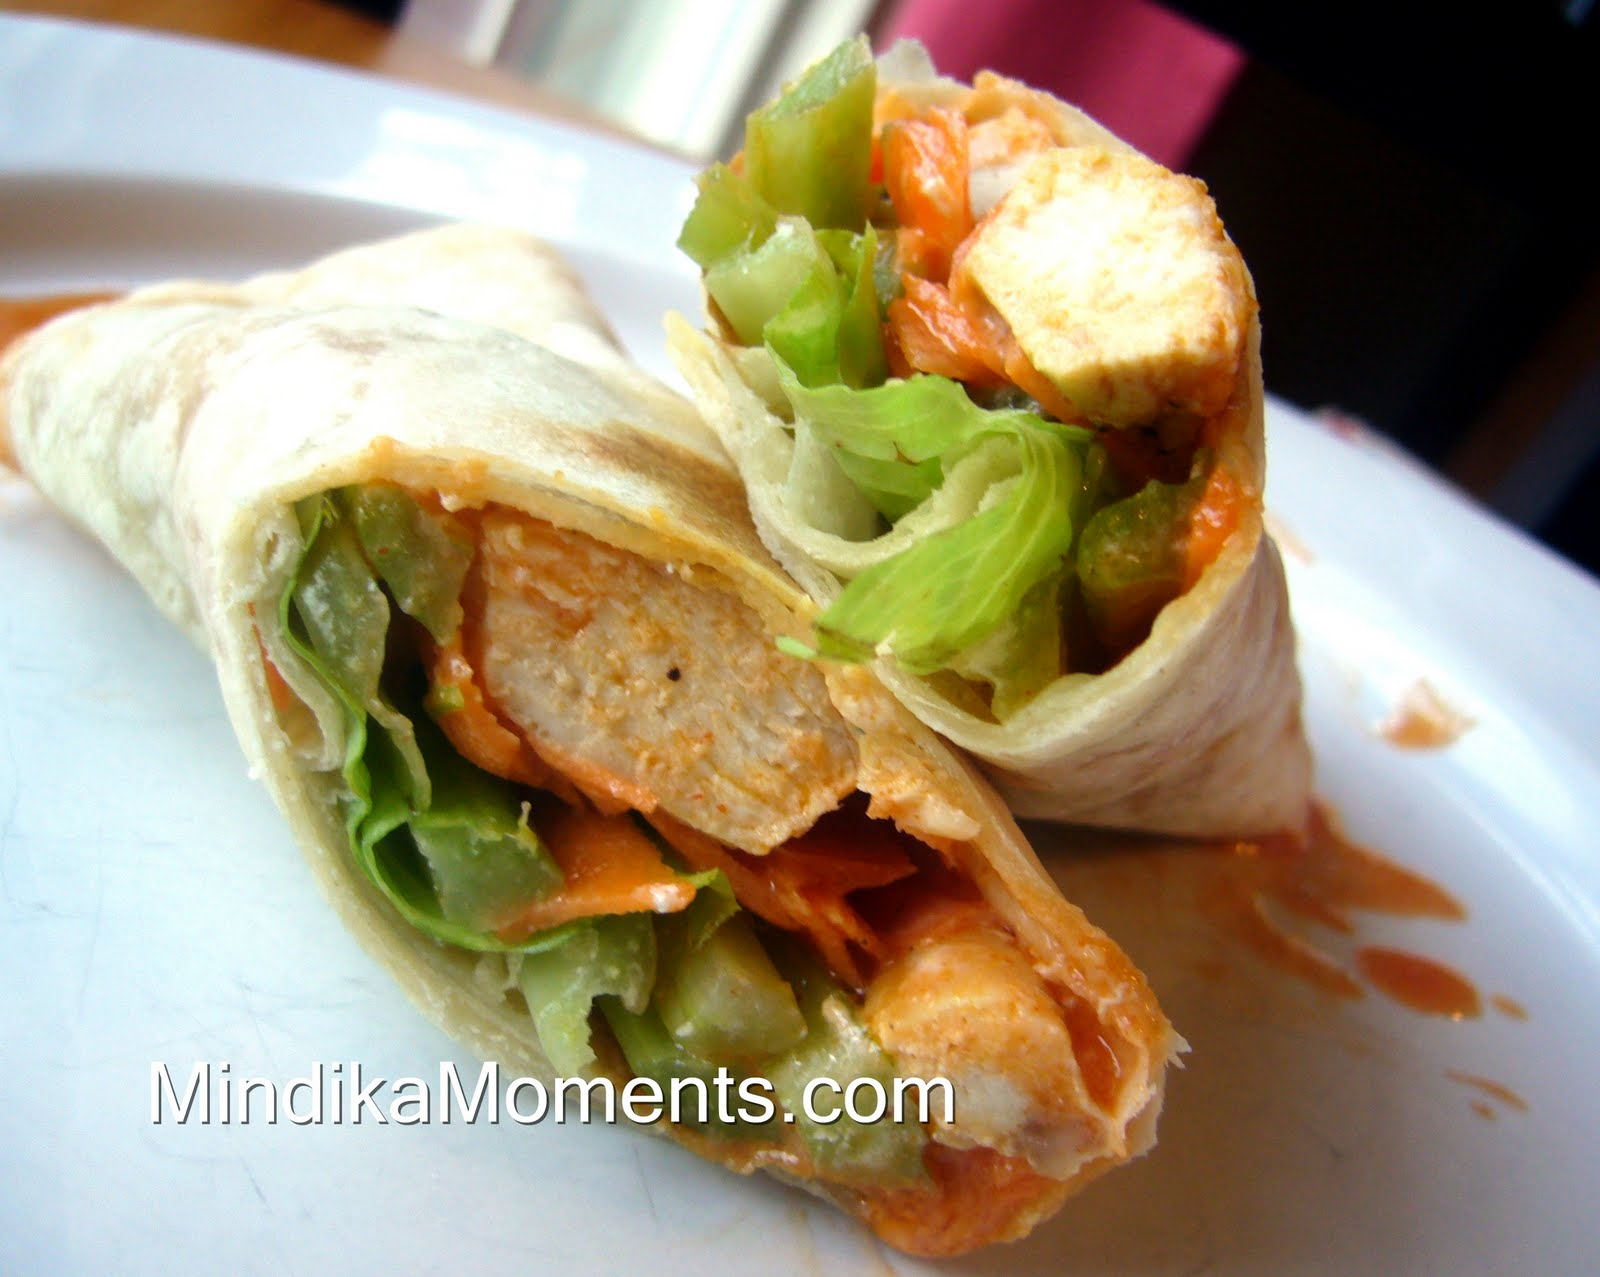 Mindika Moments: BUFFALO CHICKEN WRAPS